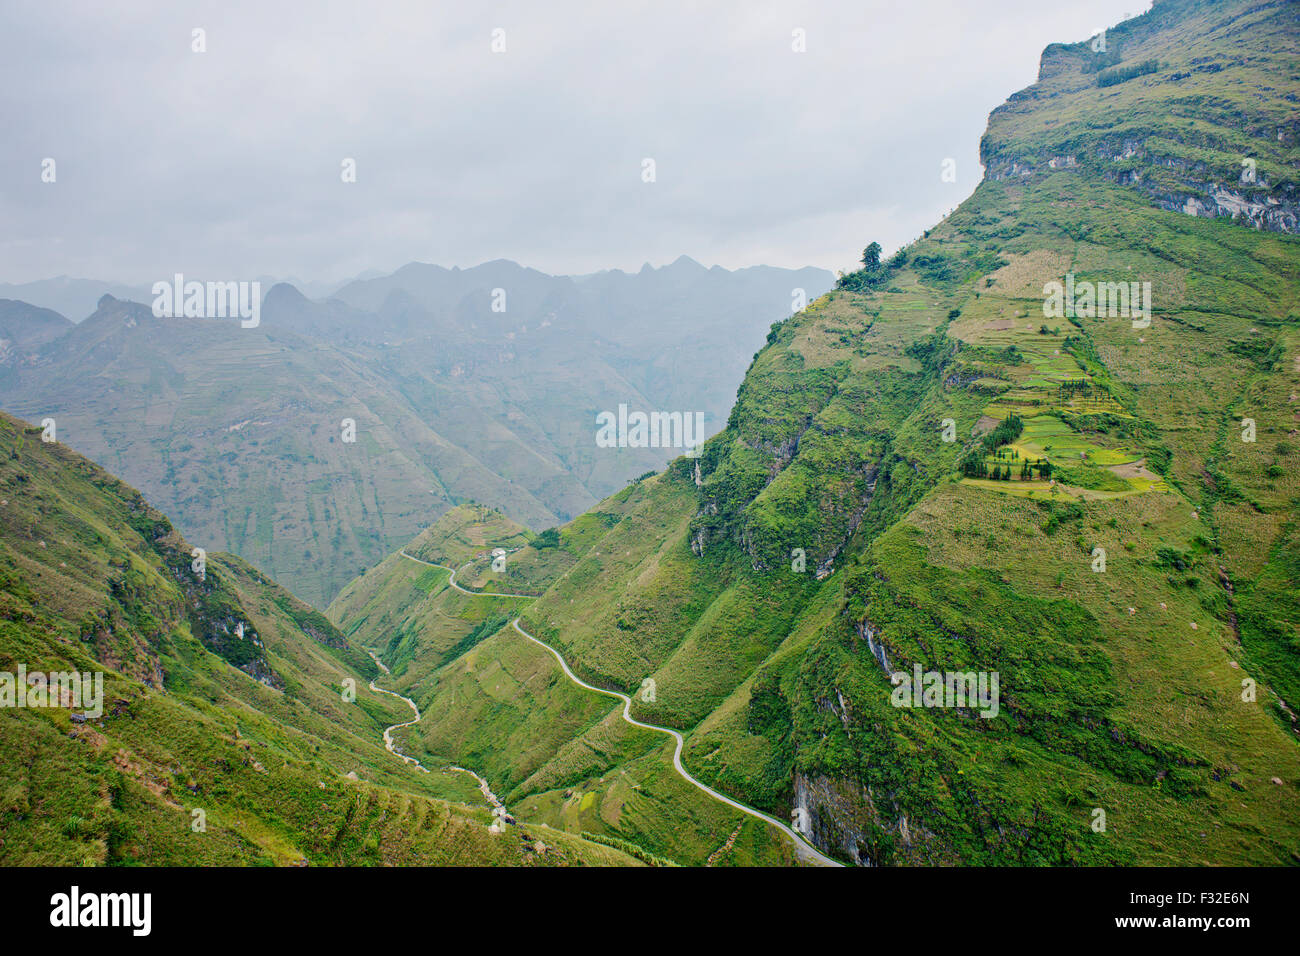 Rugged mountain landscape in Ha Giang province, north Vietnam, close to Chinese border. - Stock Image